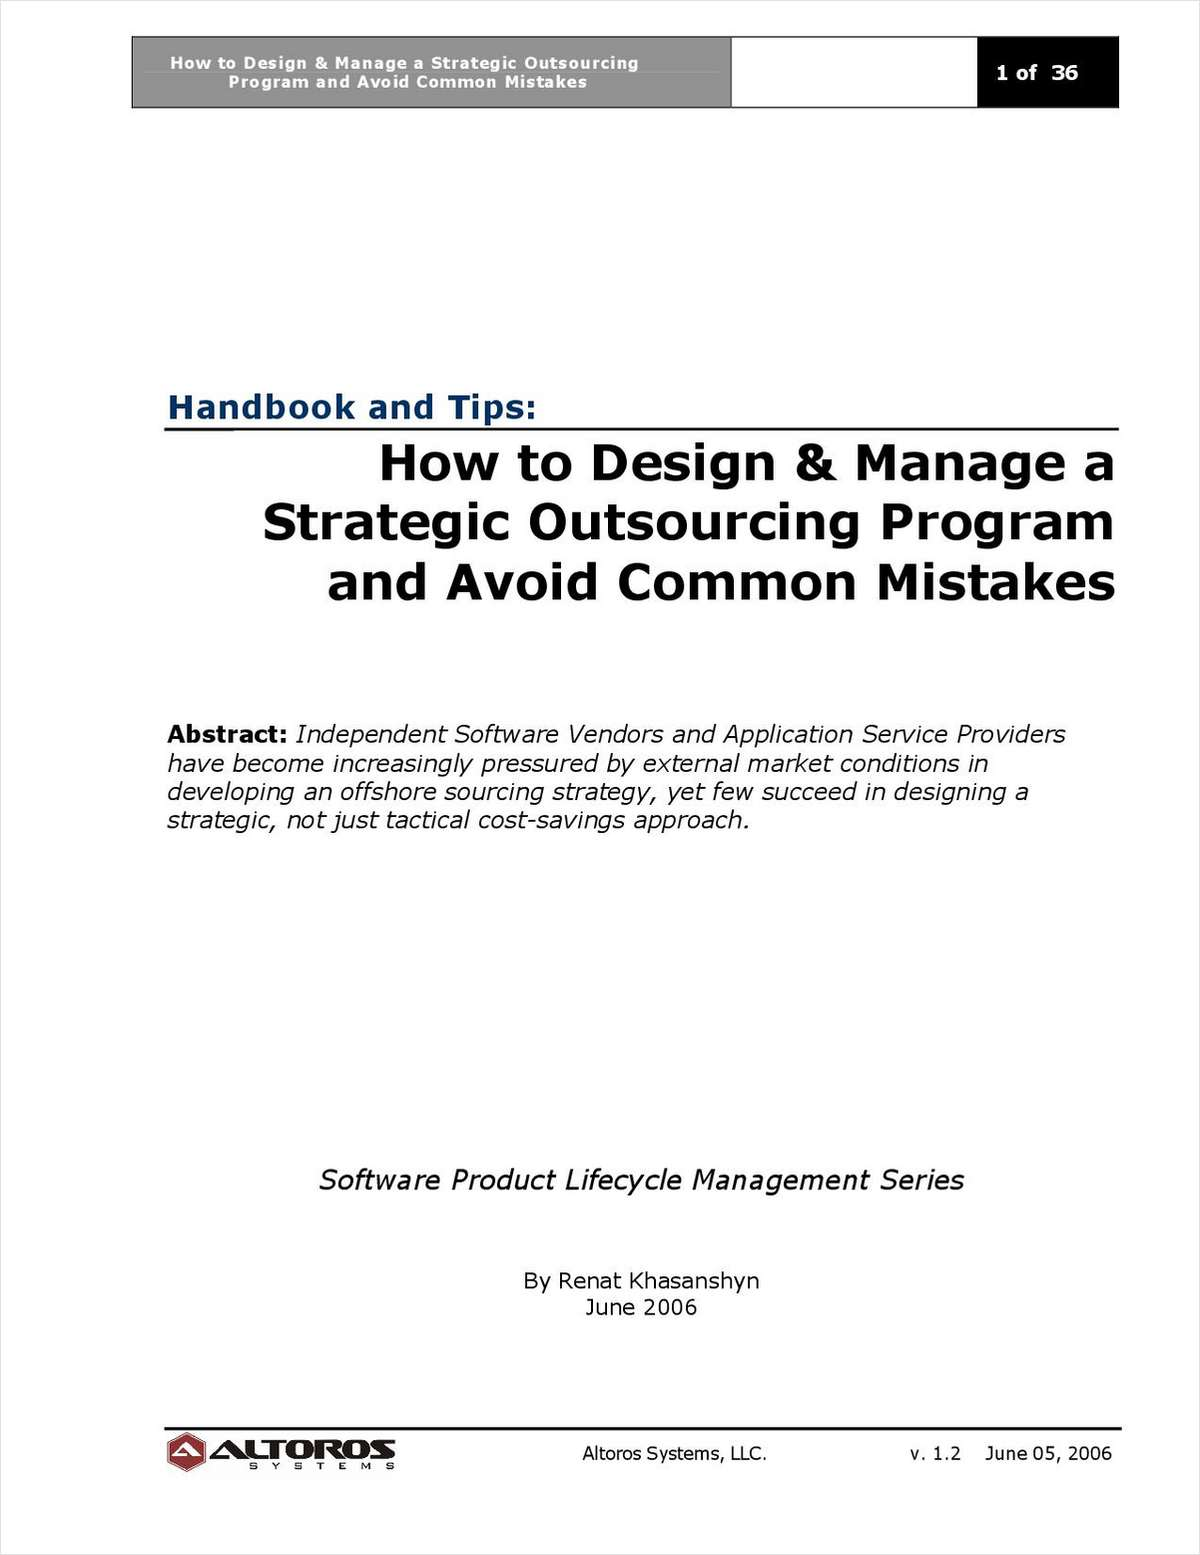 How to Design & Manage a Strategic Outsourcing Program and Avoid Common Mistakes